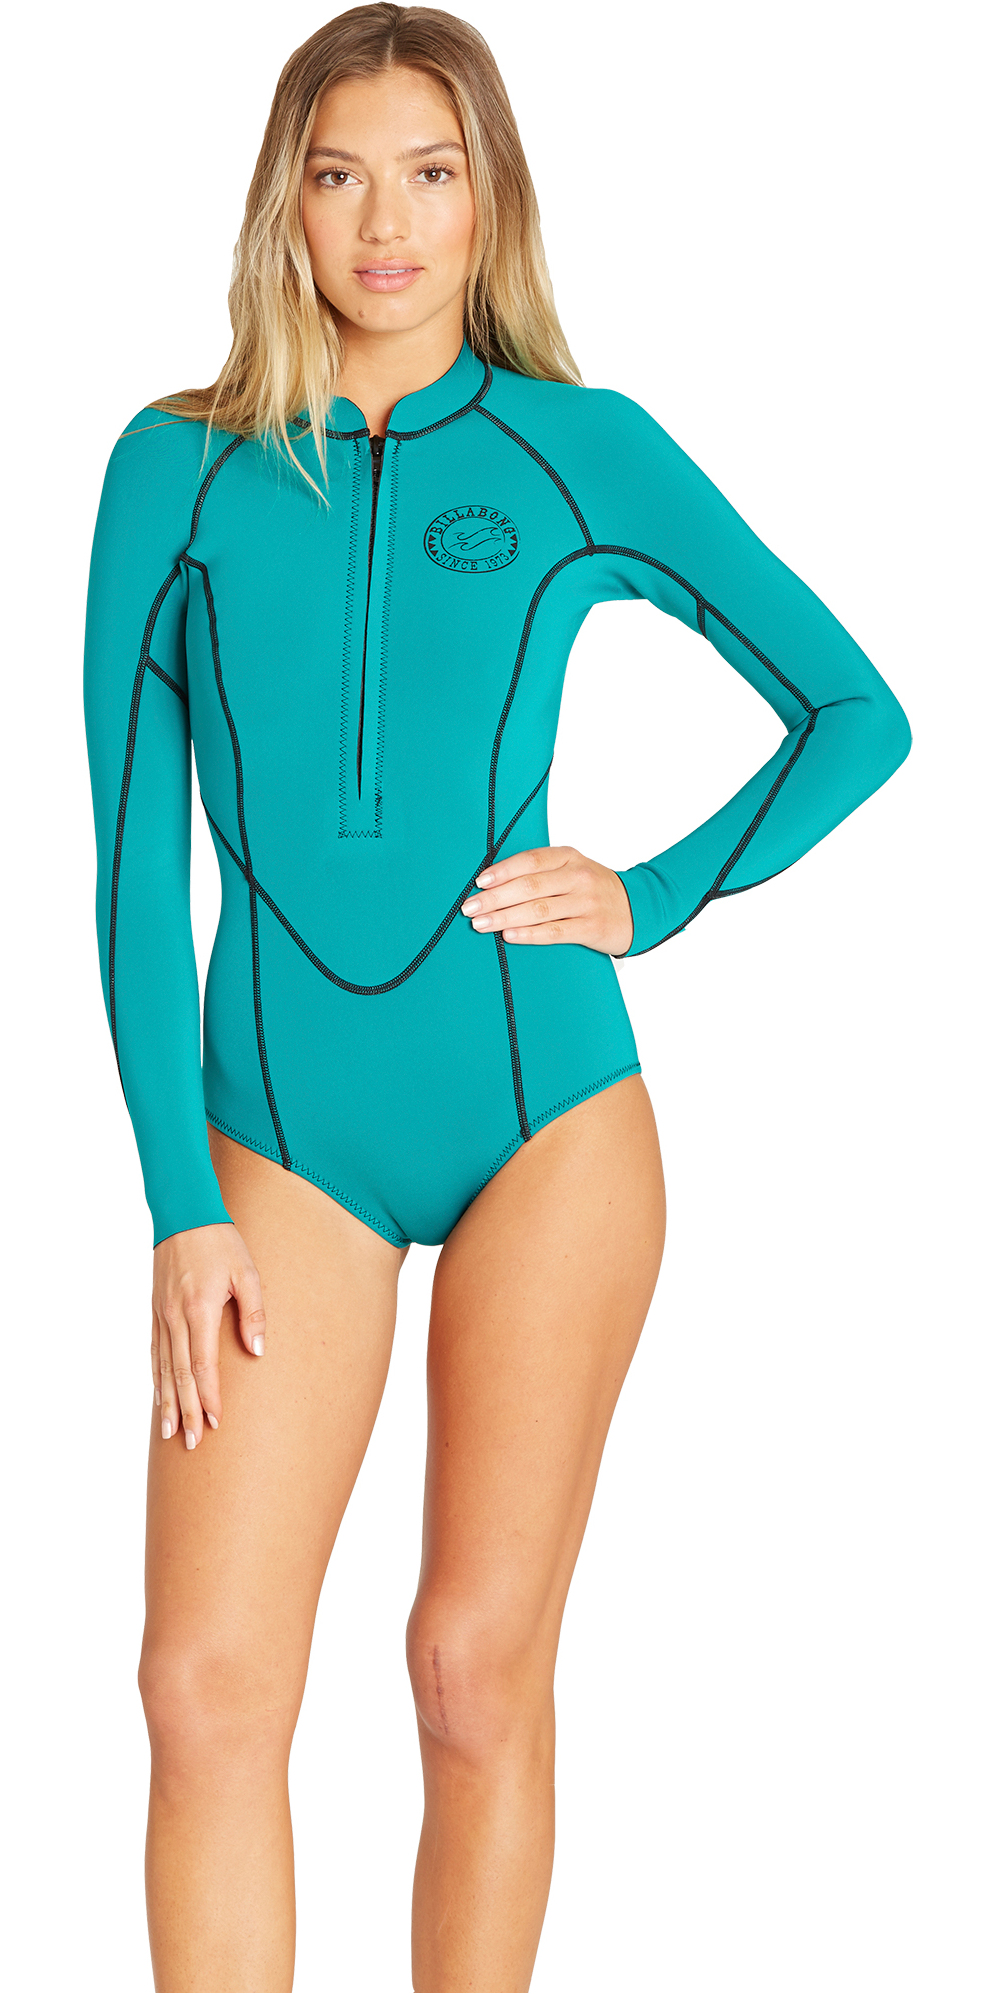 a7a923075ea 2019 Billabong Womens Salty Dayz 2mm Ls Spring Wetsuit Palm Green N42g03 -  Womens - Shorty | Wetsuit Outlet